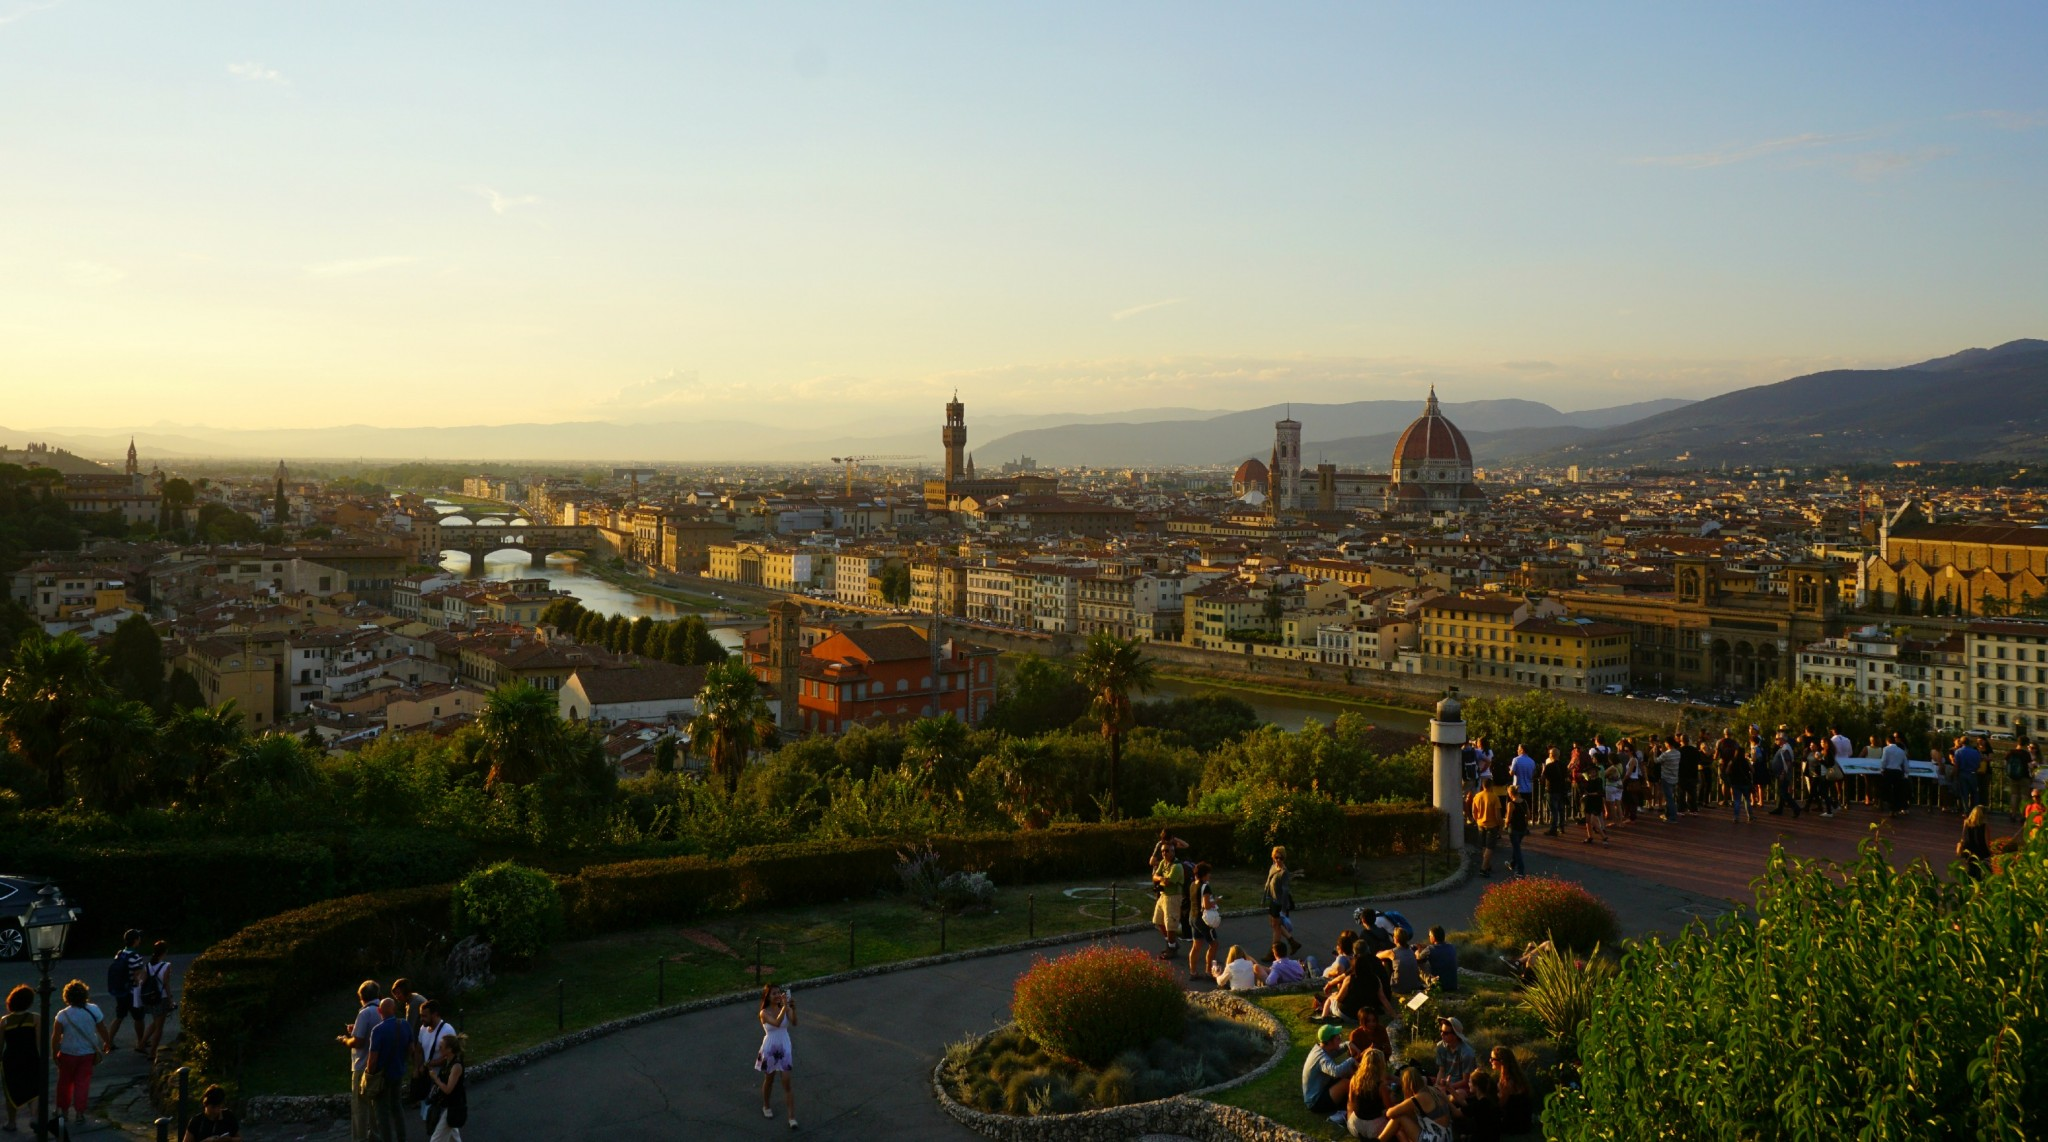 Italian Florence: My Love/Hate Relationship With Florence